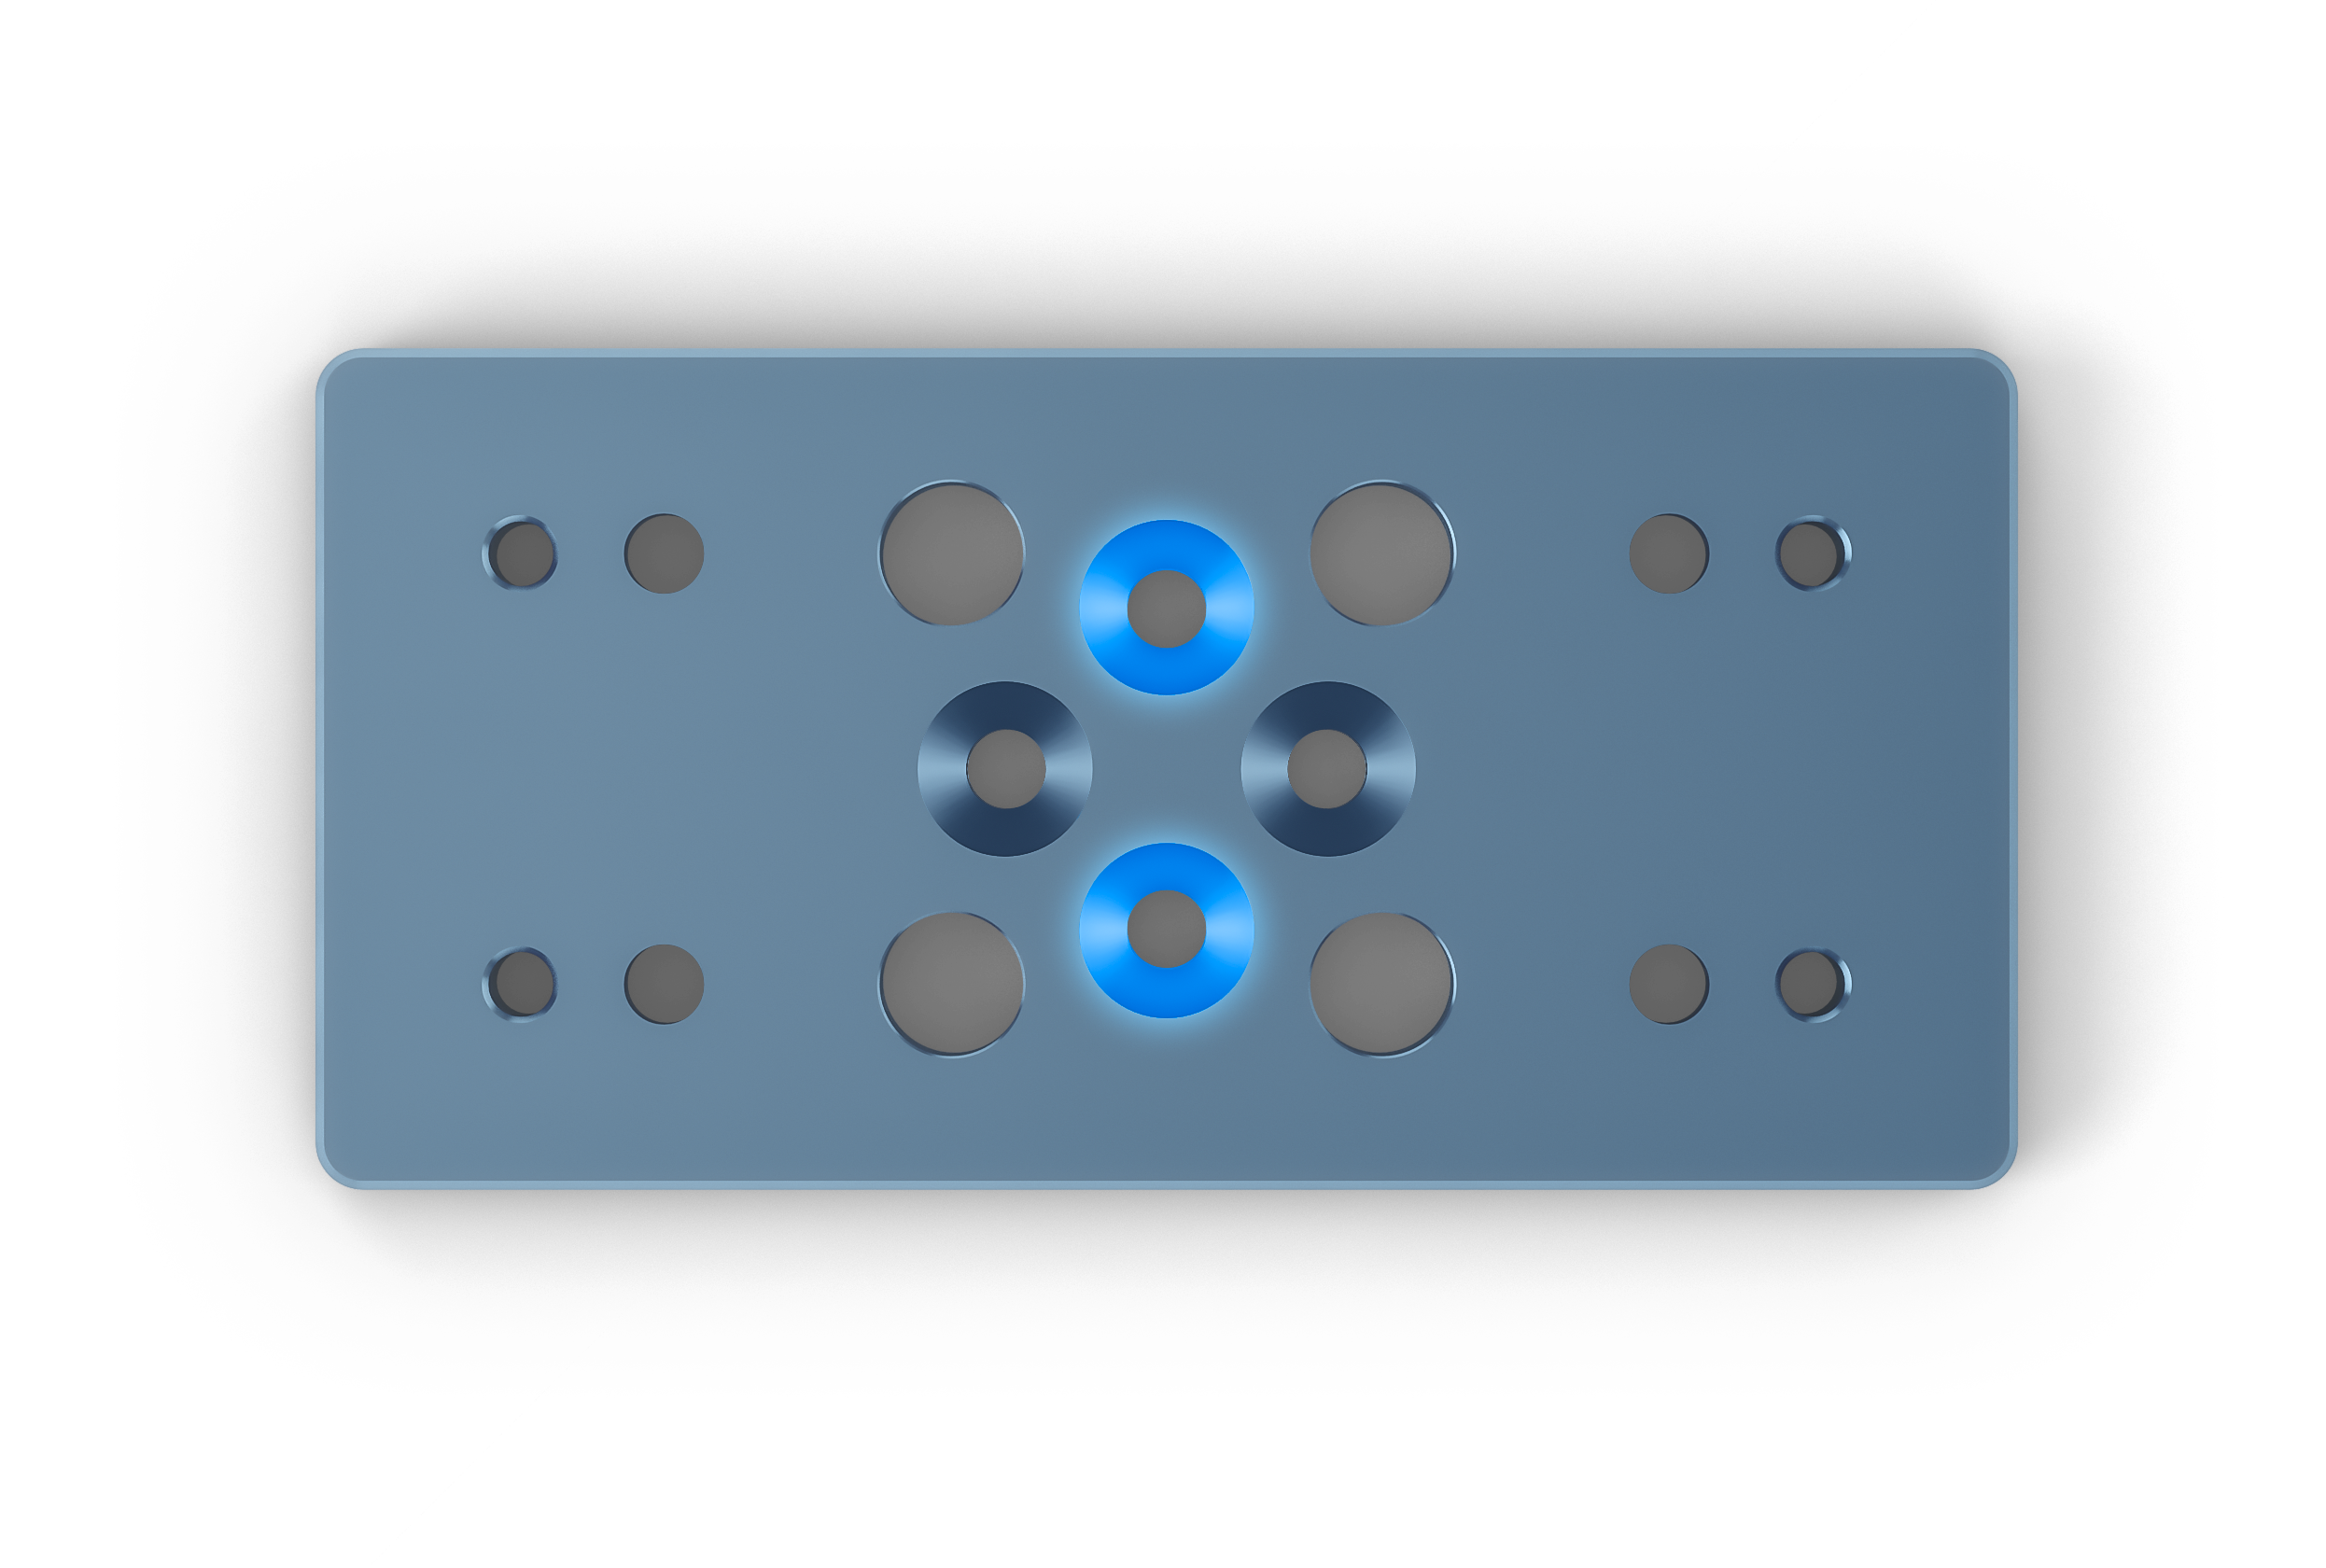 Figure 8: Countersinks (highlighted in blue) for attaching the mount via standard gussets.